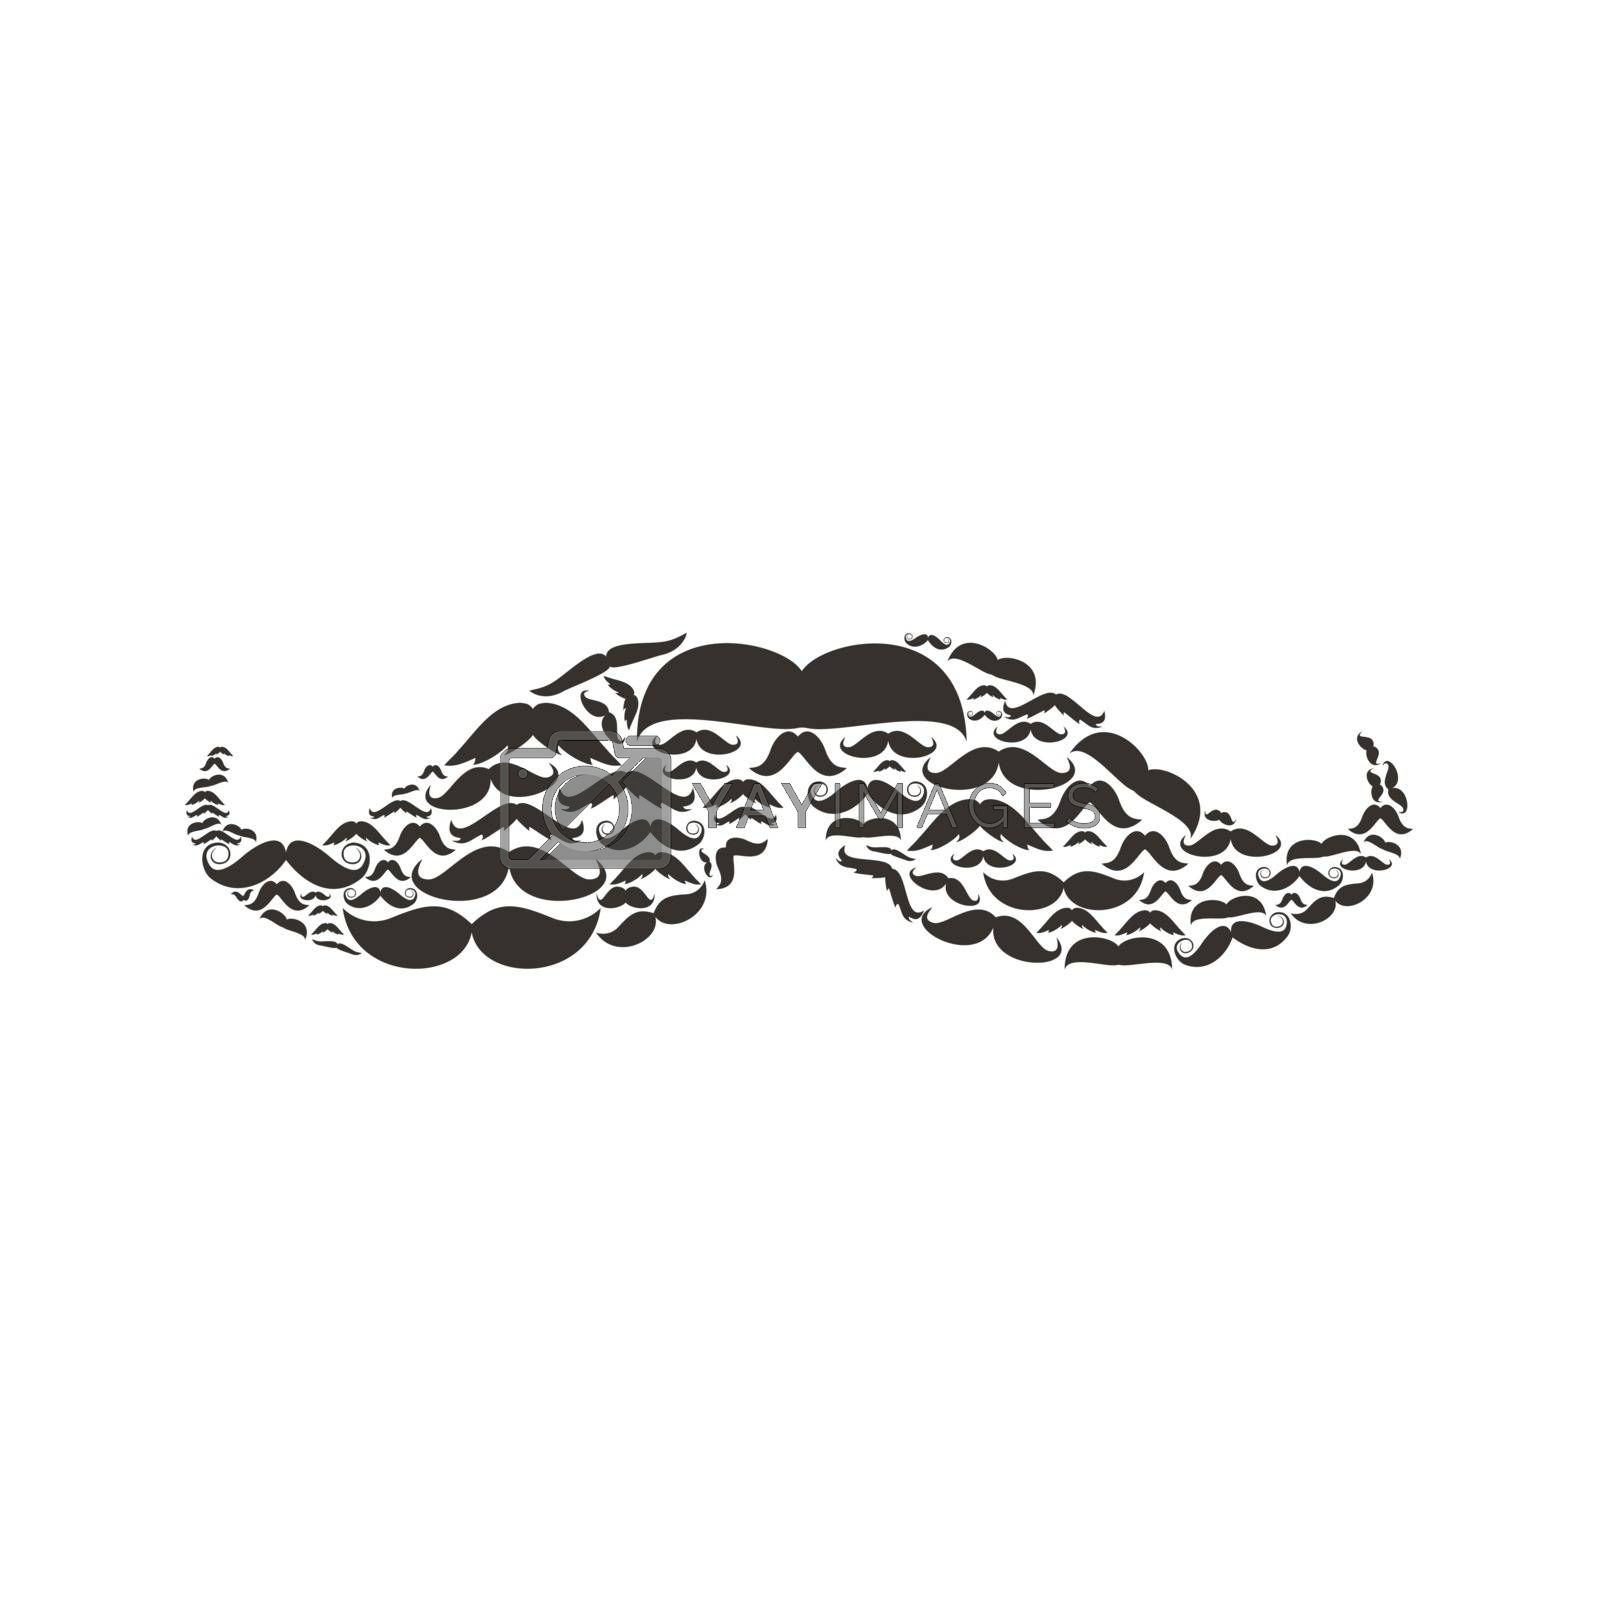 Moustaches made of moustaches. A vector illustration